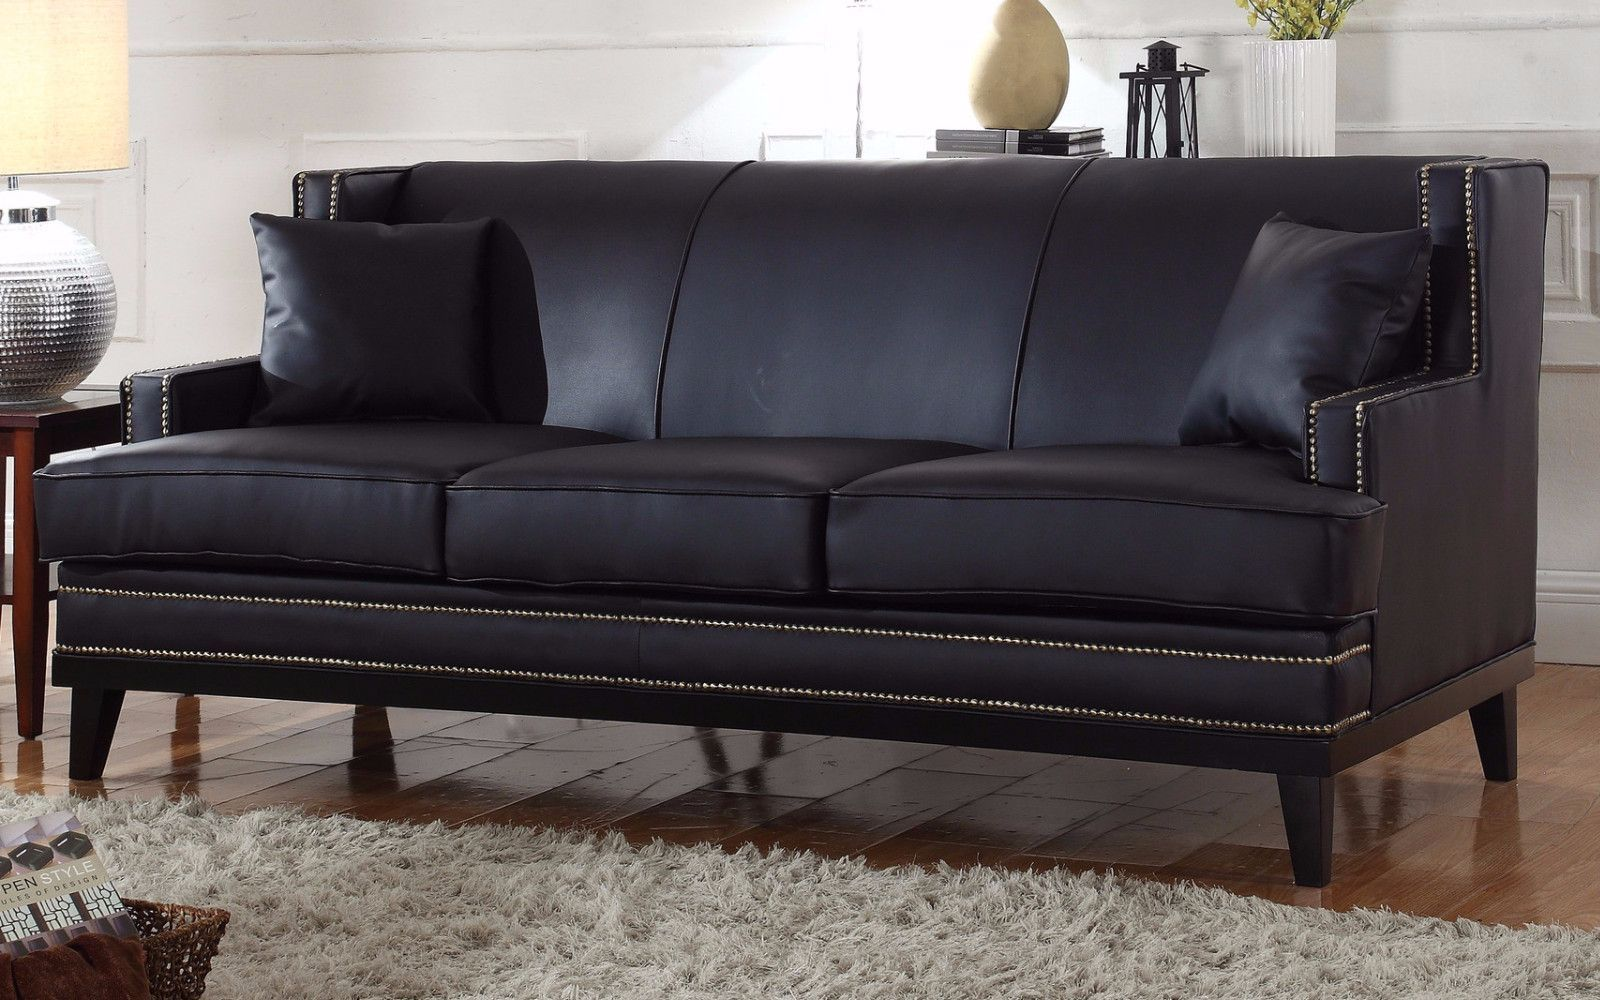 Modern Soft Bonded Leather Sofa With Nailhead Trim Details   Black